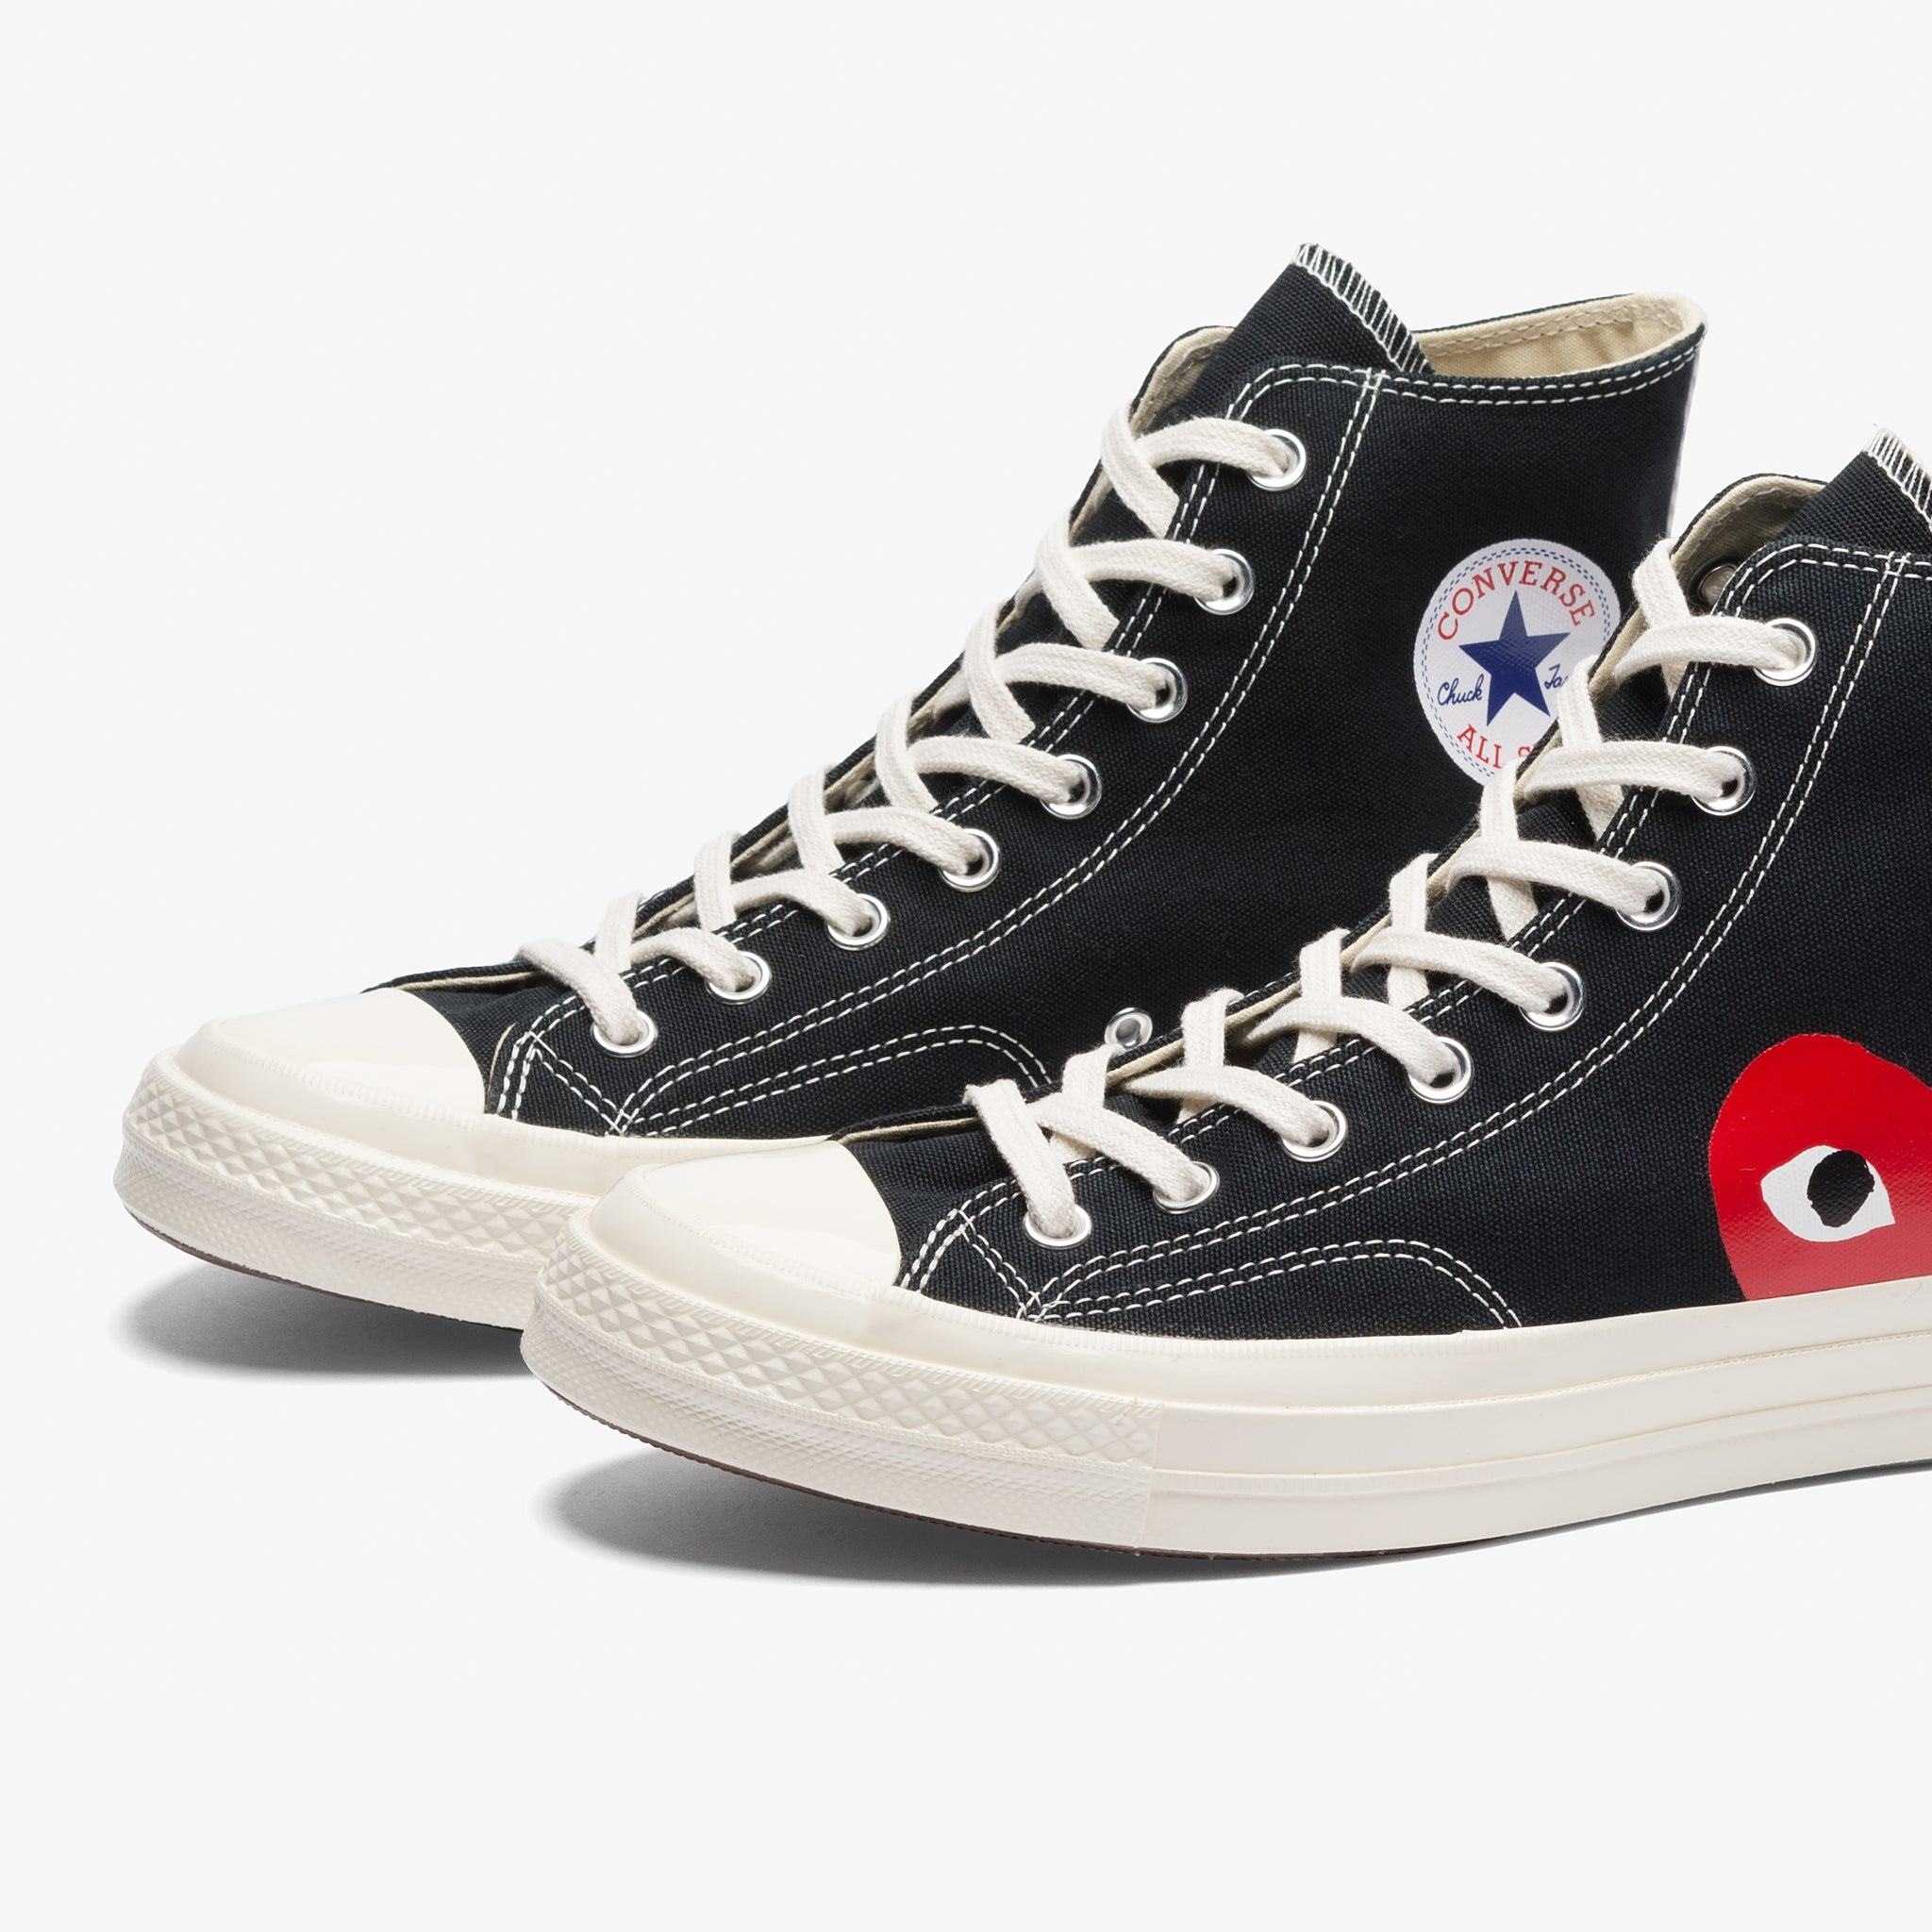 CONVERSE CDG PLAY CT 70 Hi (Black White) – Bows and Arrows 75494b280